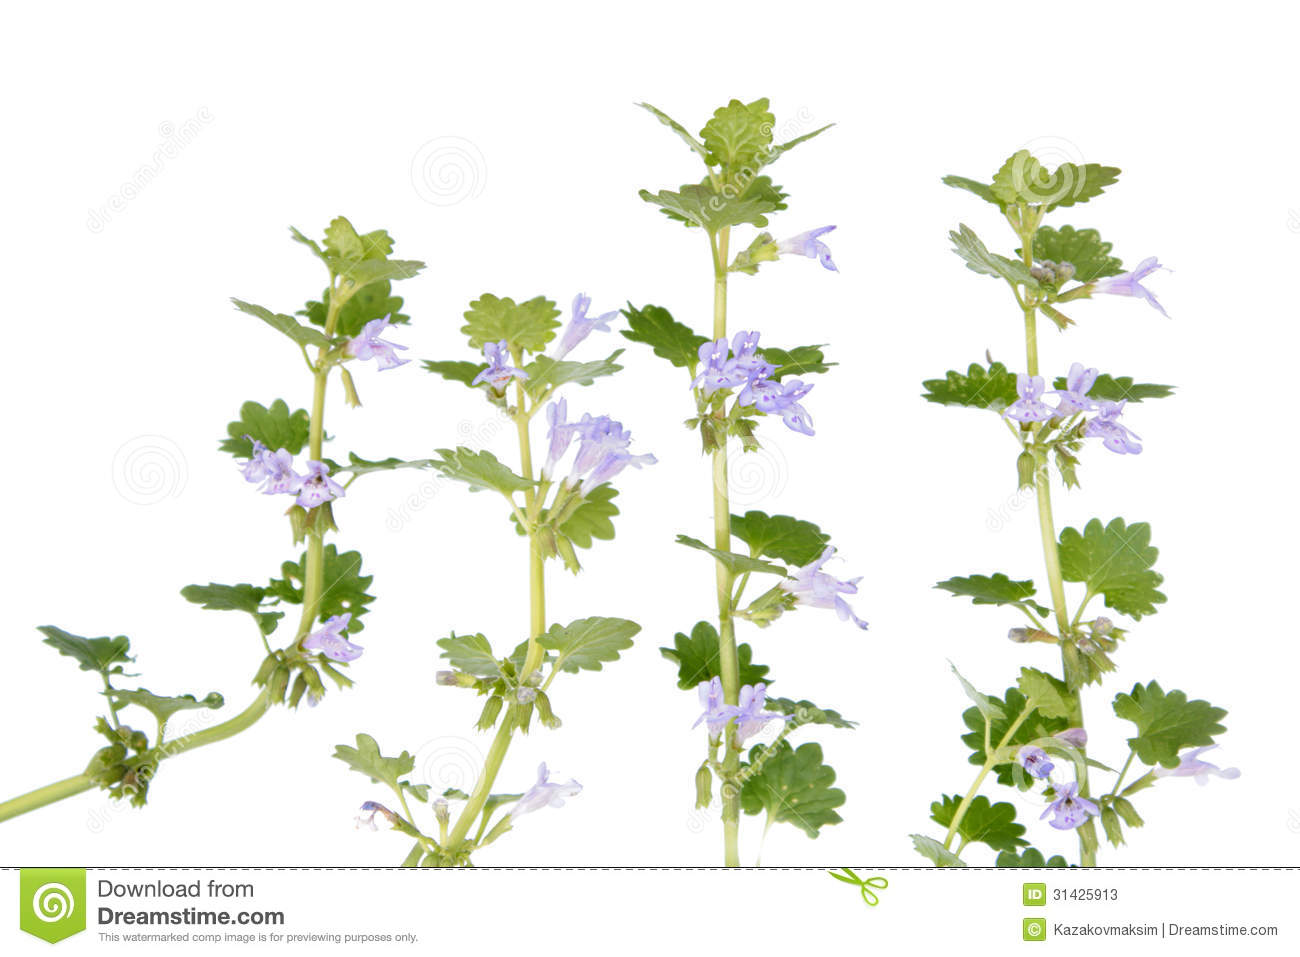 Glechoma Hederacea (Ground Ivy) Stock Photos.